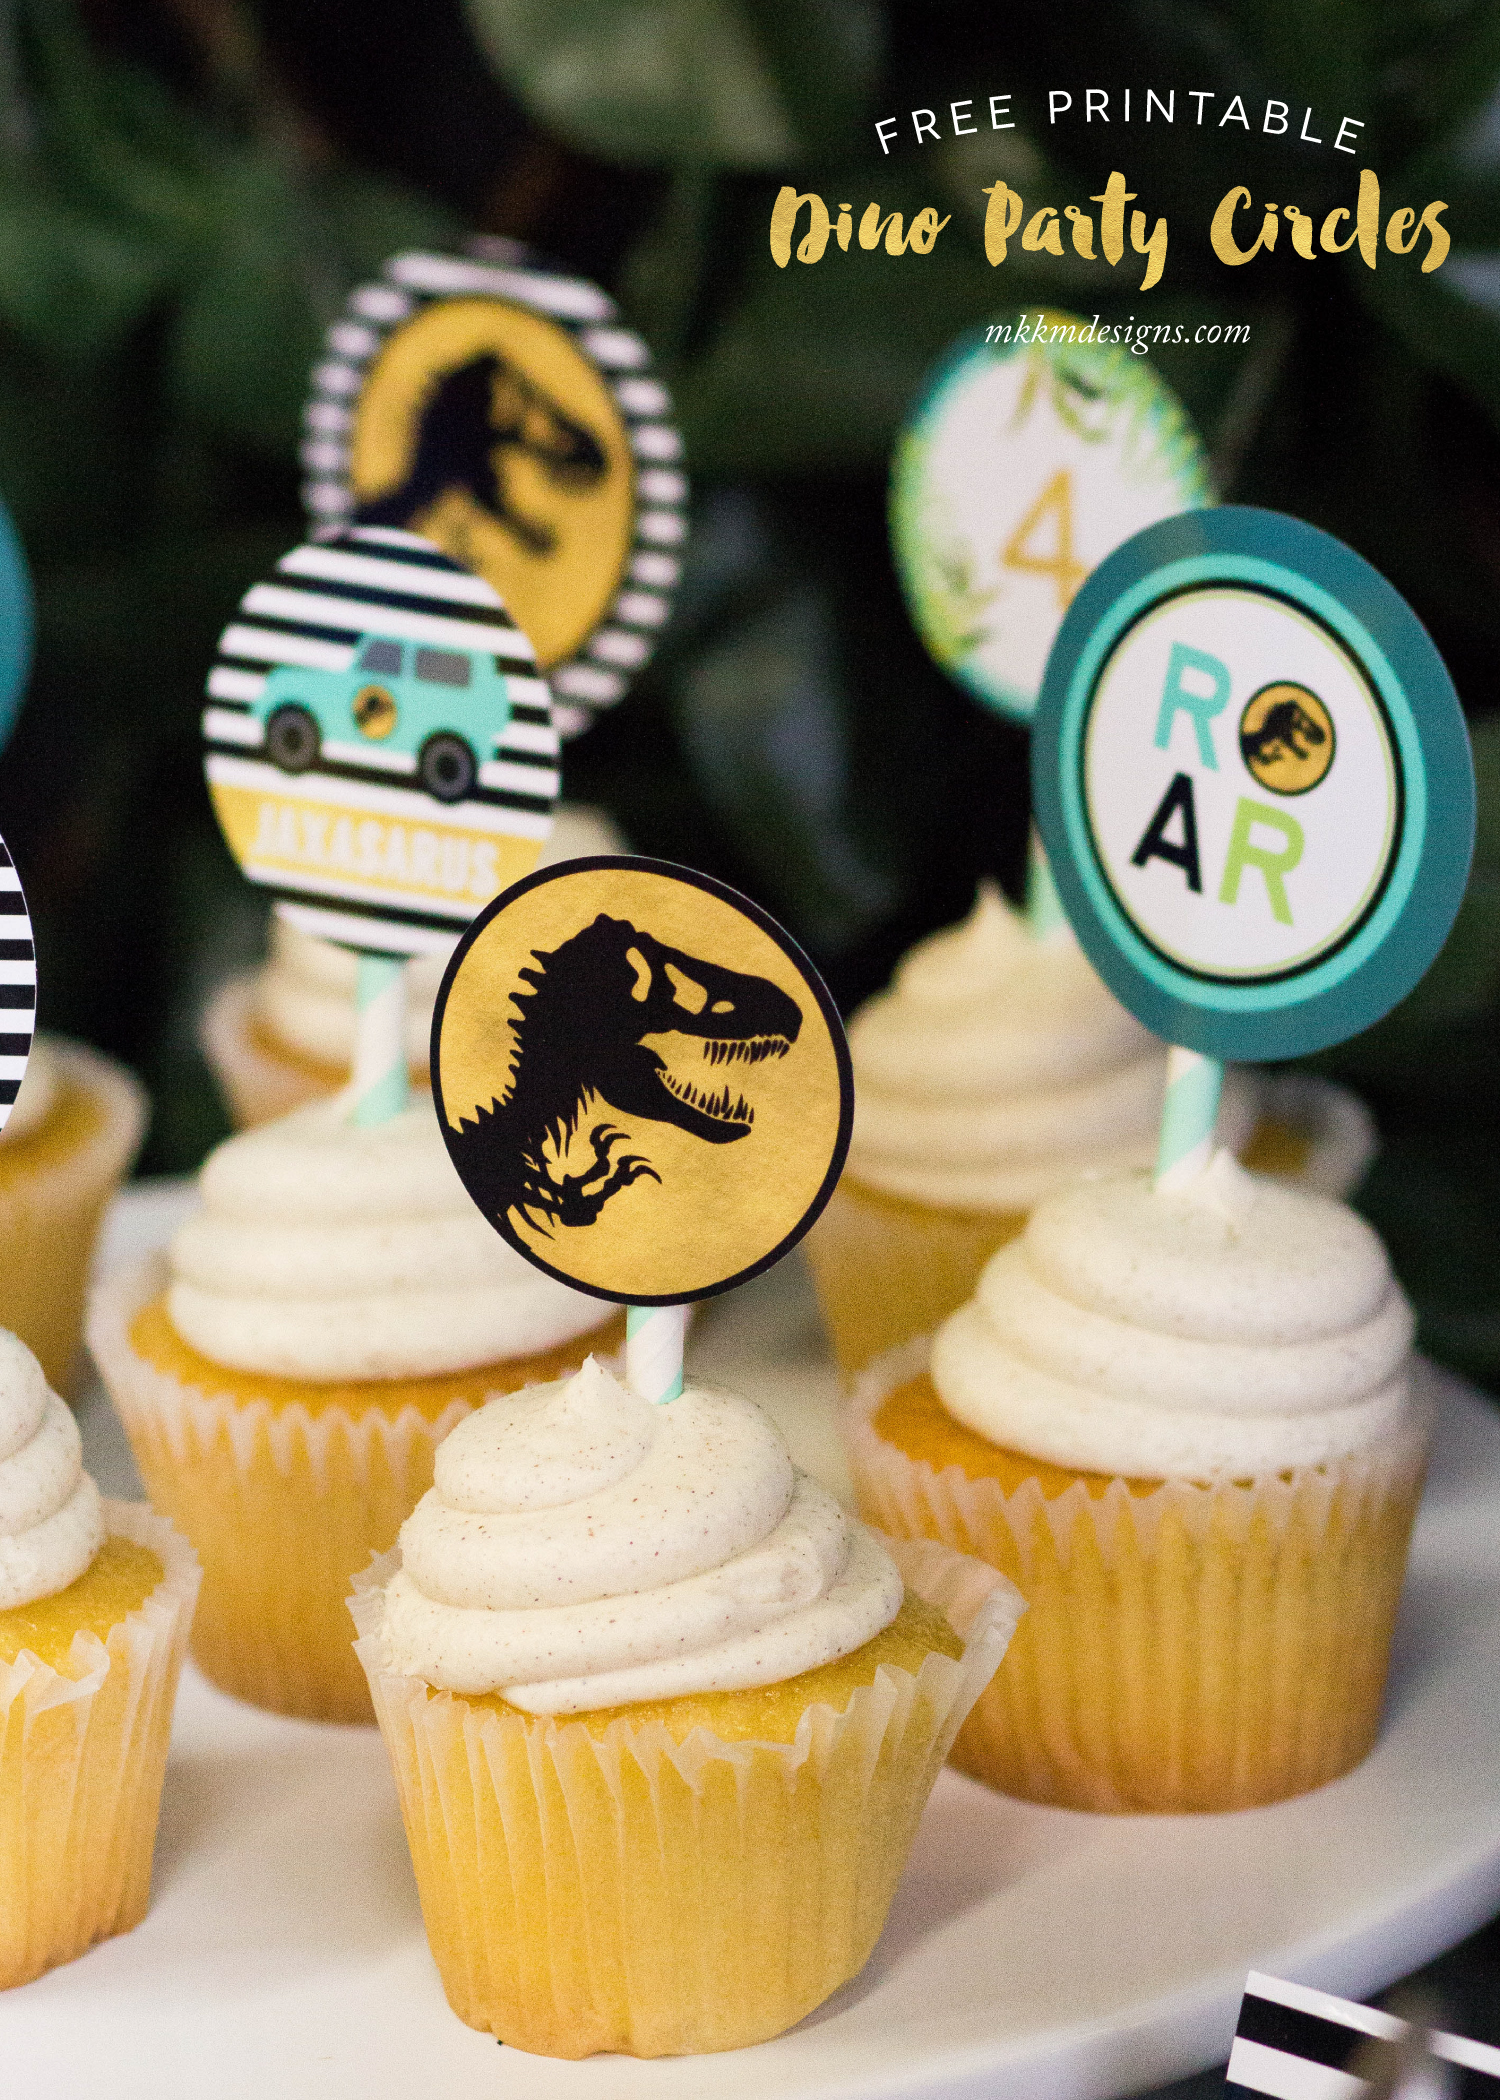 Jurassic Park Inspired Dinosaur Party Free Printable Dino Circles MKKM Designs